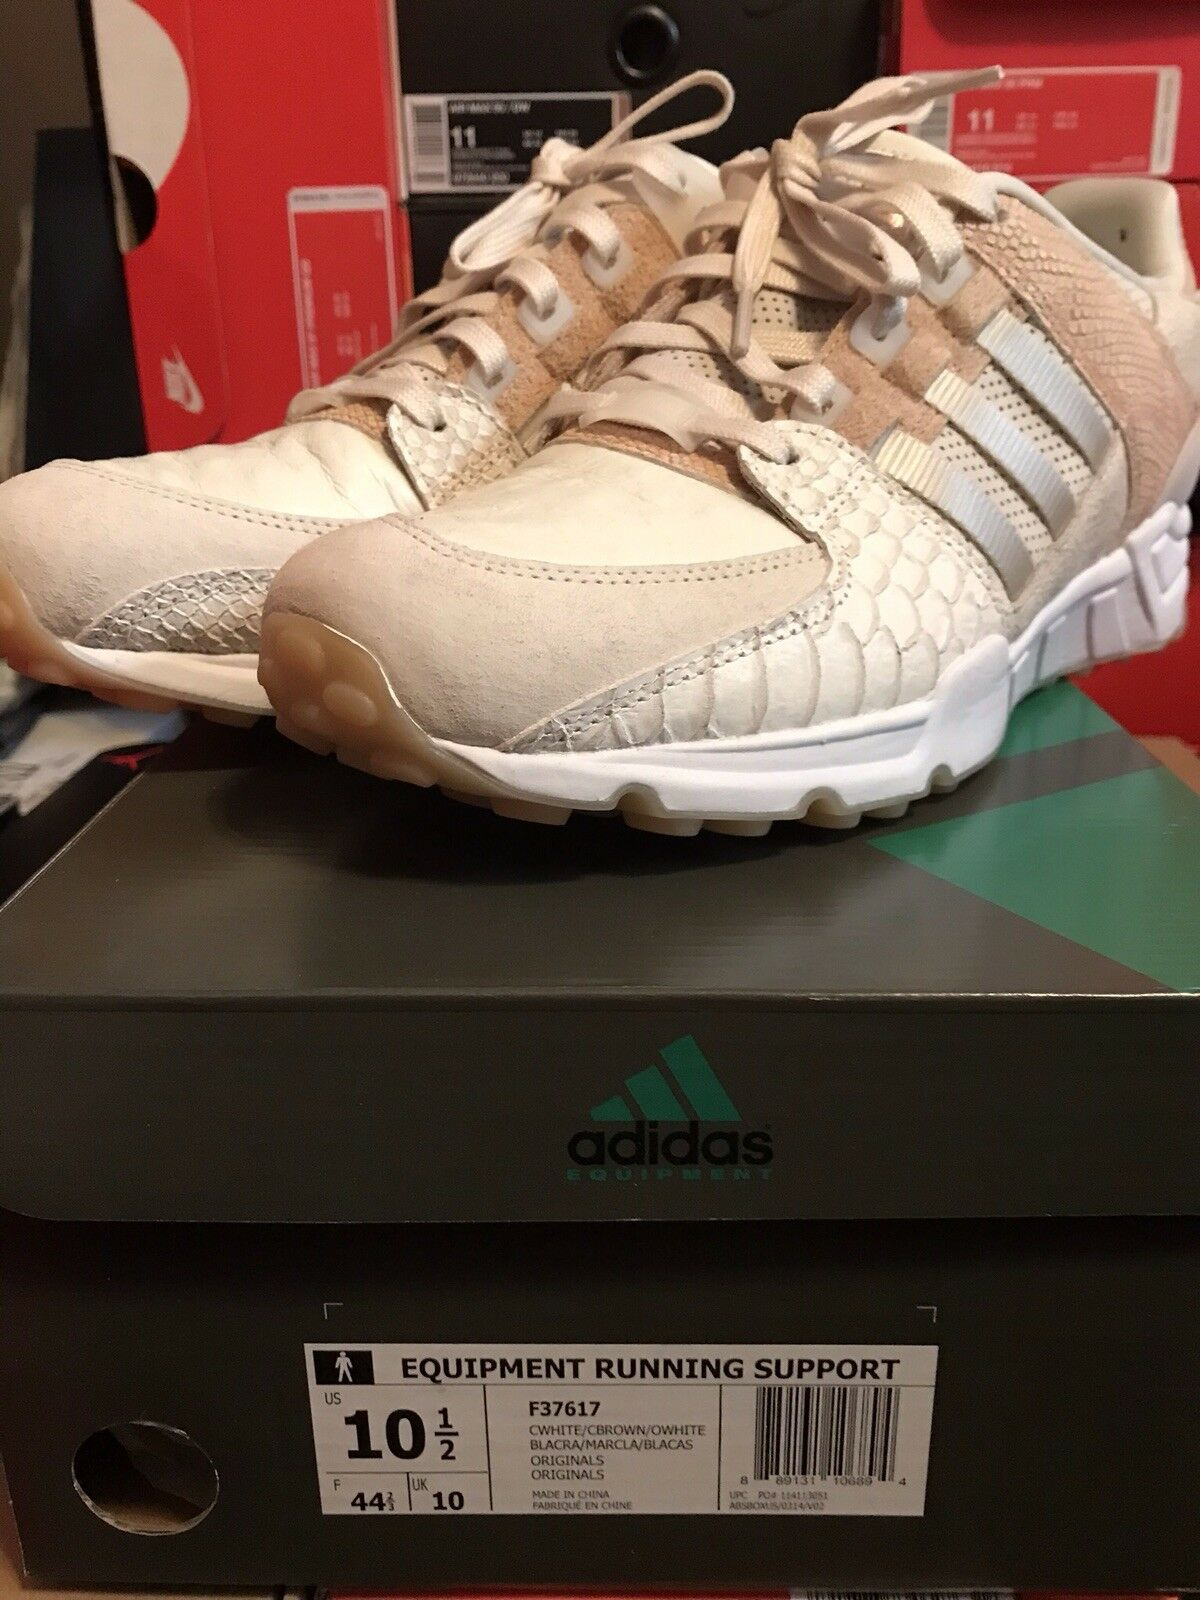 Adidas Equipment Running Support 93 Luxe Oddity F37617 White Tan Mens Size 11